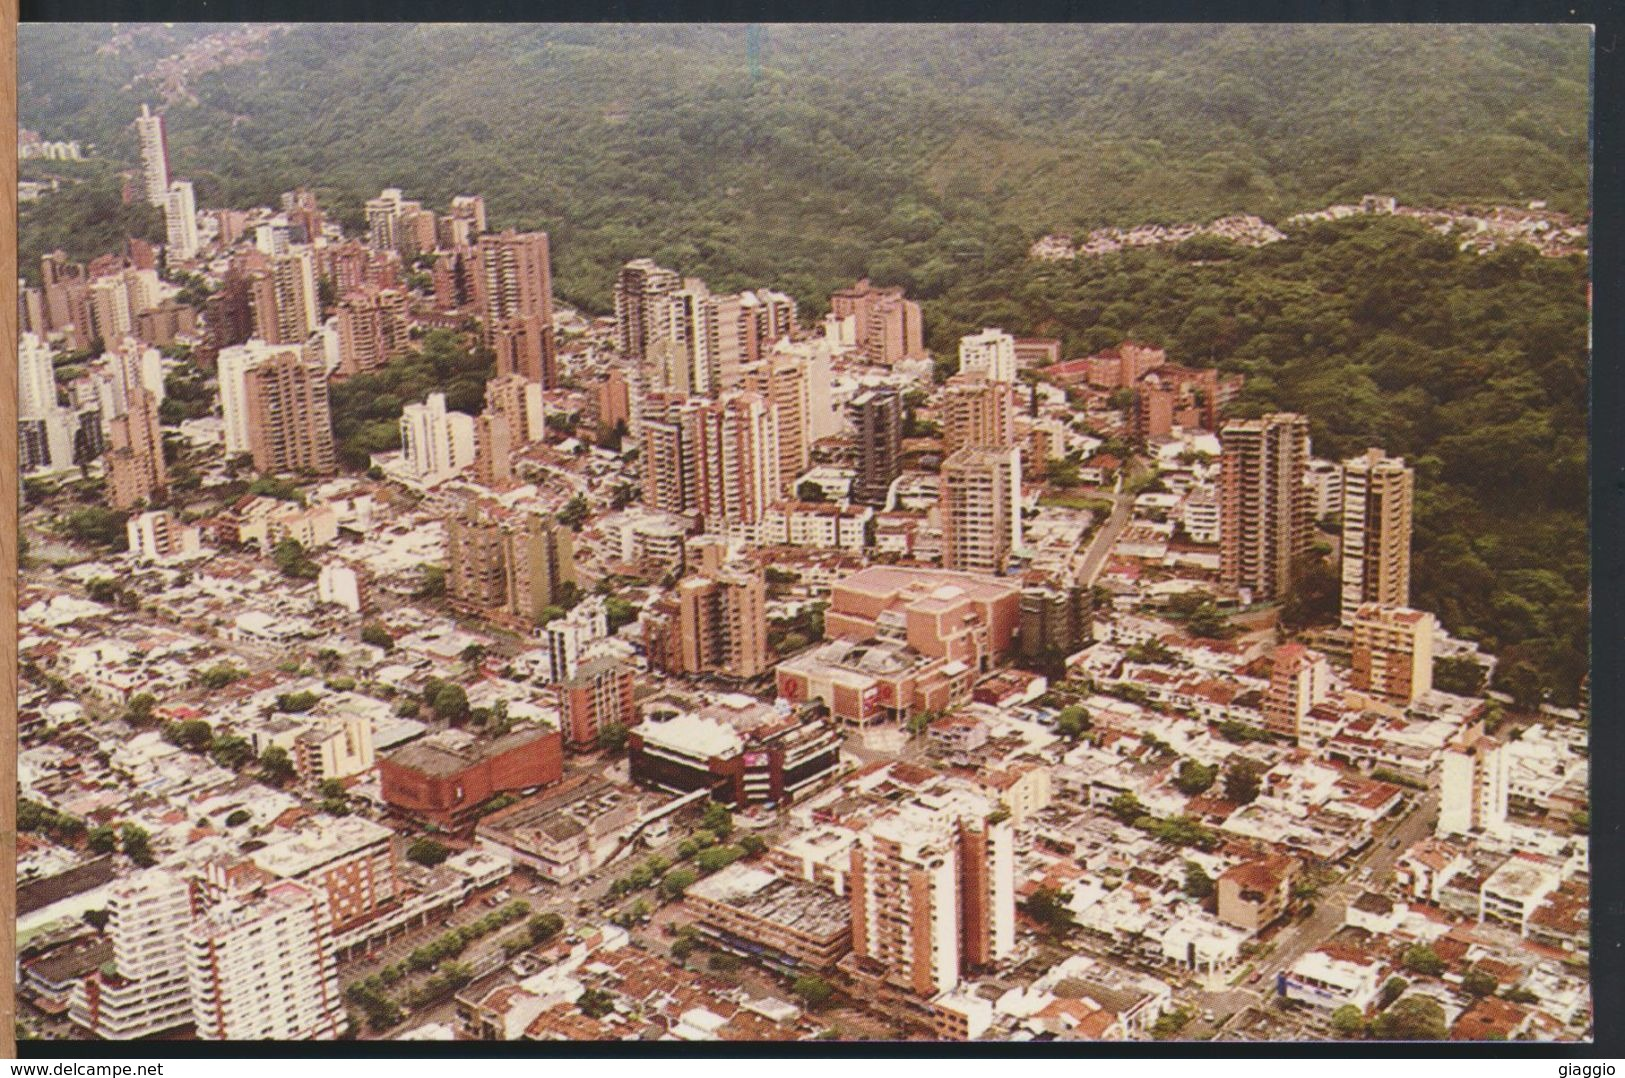 °°° 9378 - COLOMBIA - BUCARAMANGA - CENTRO COMERCIAL CANAVERAL °°° - Colombia